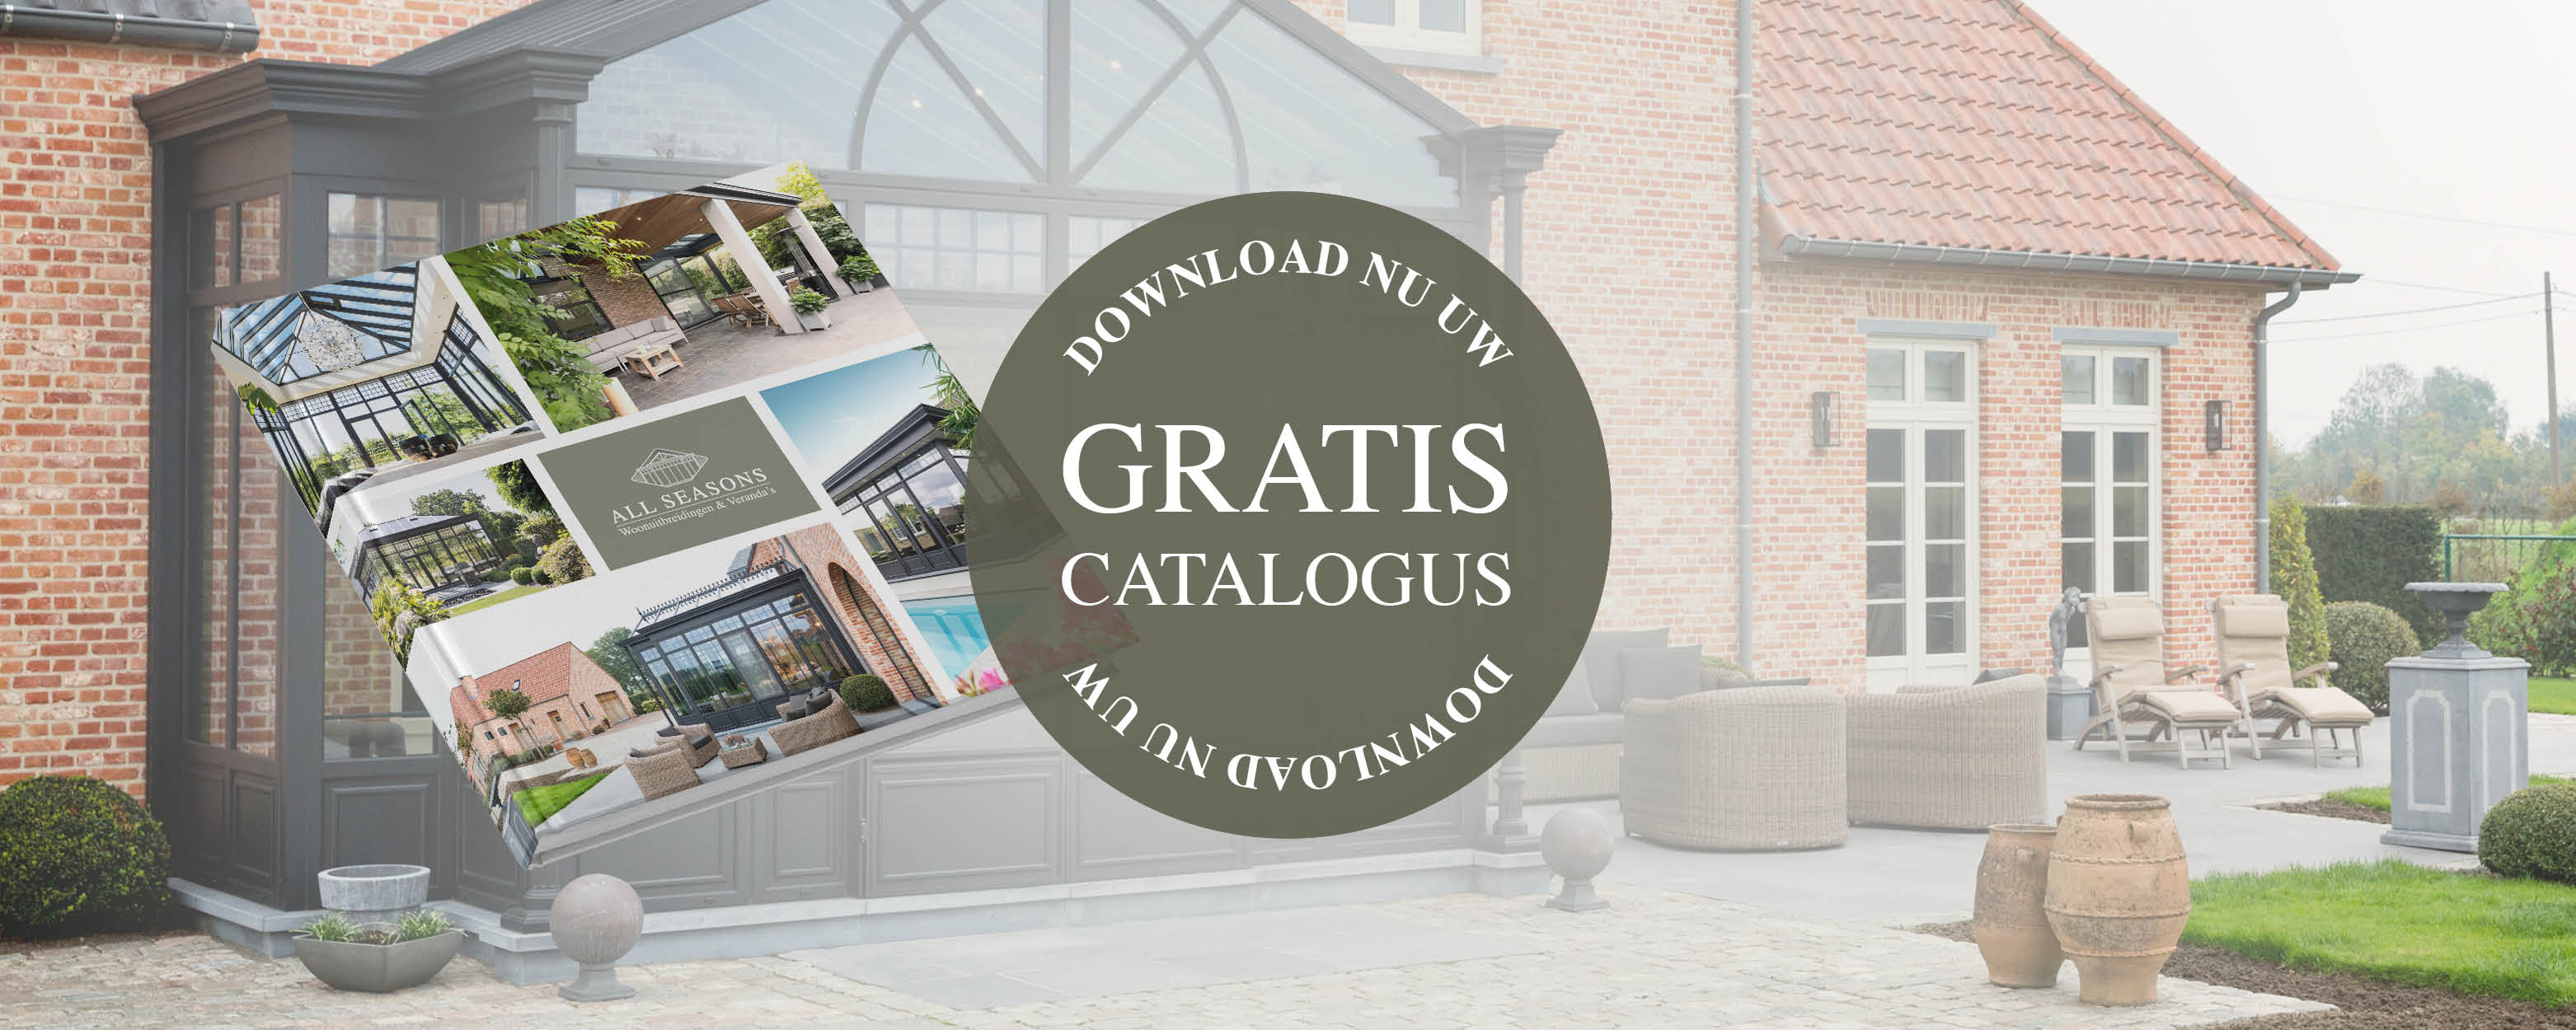 Download nu uw gratis catalogus